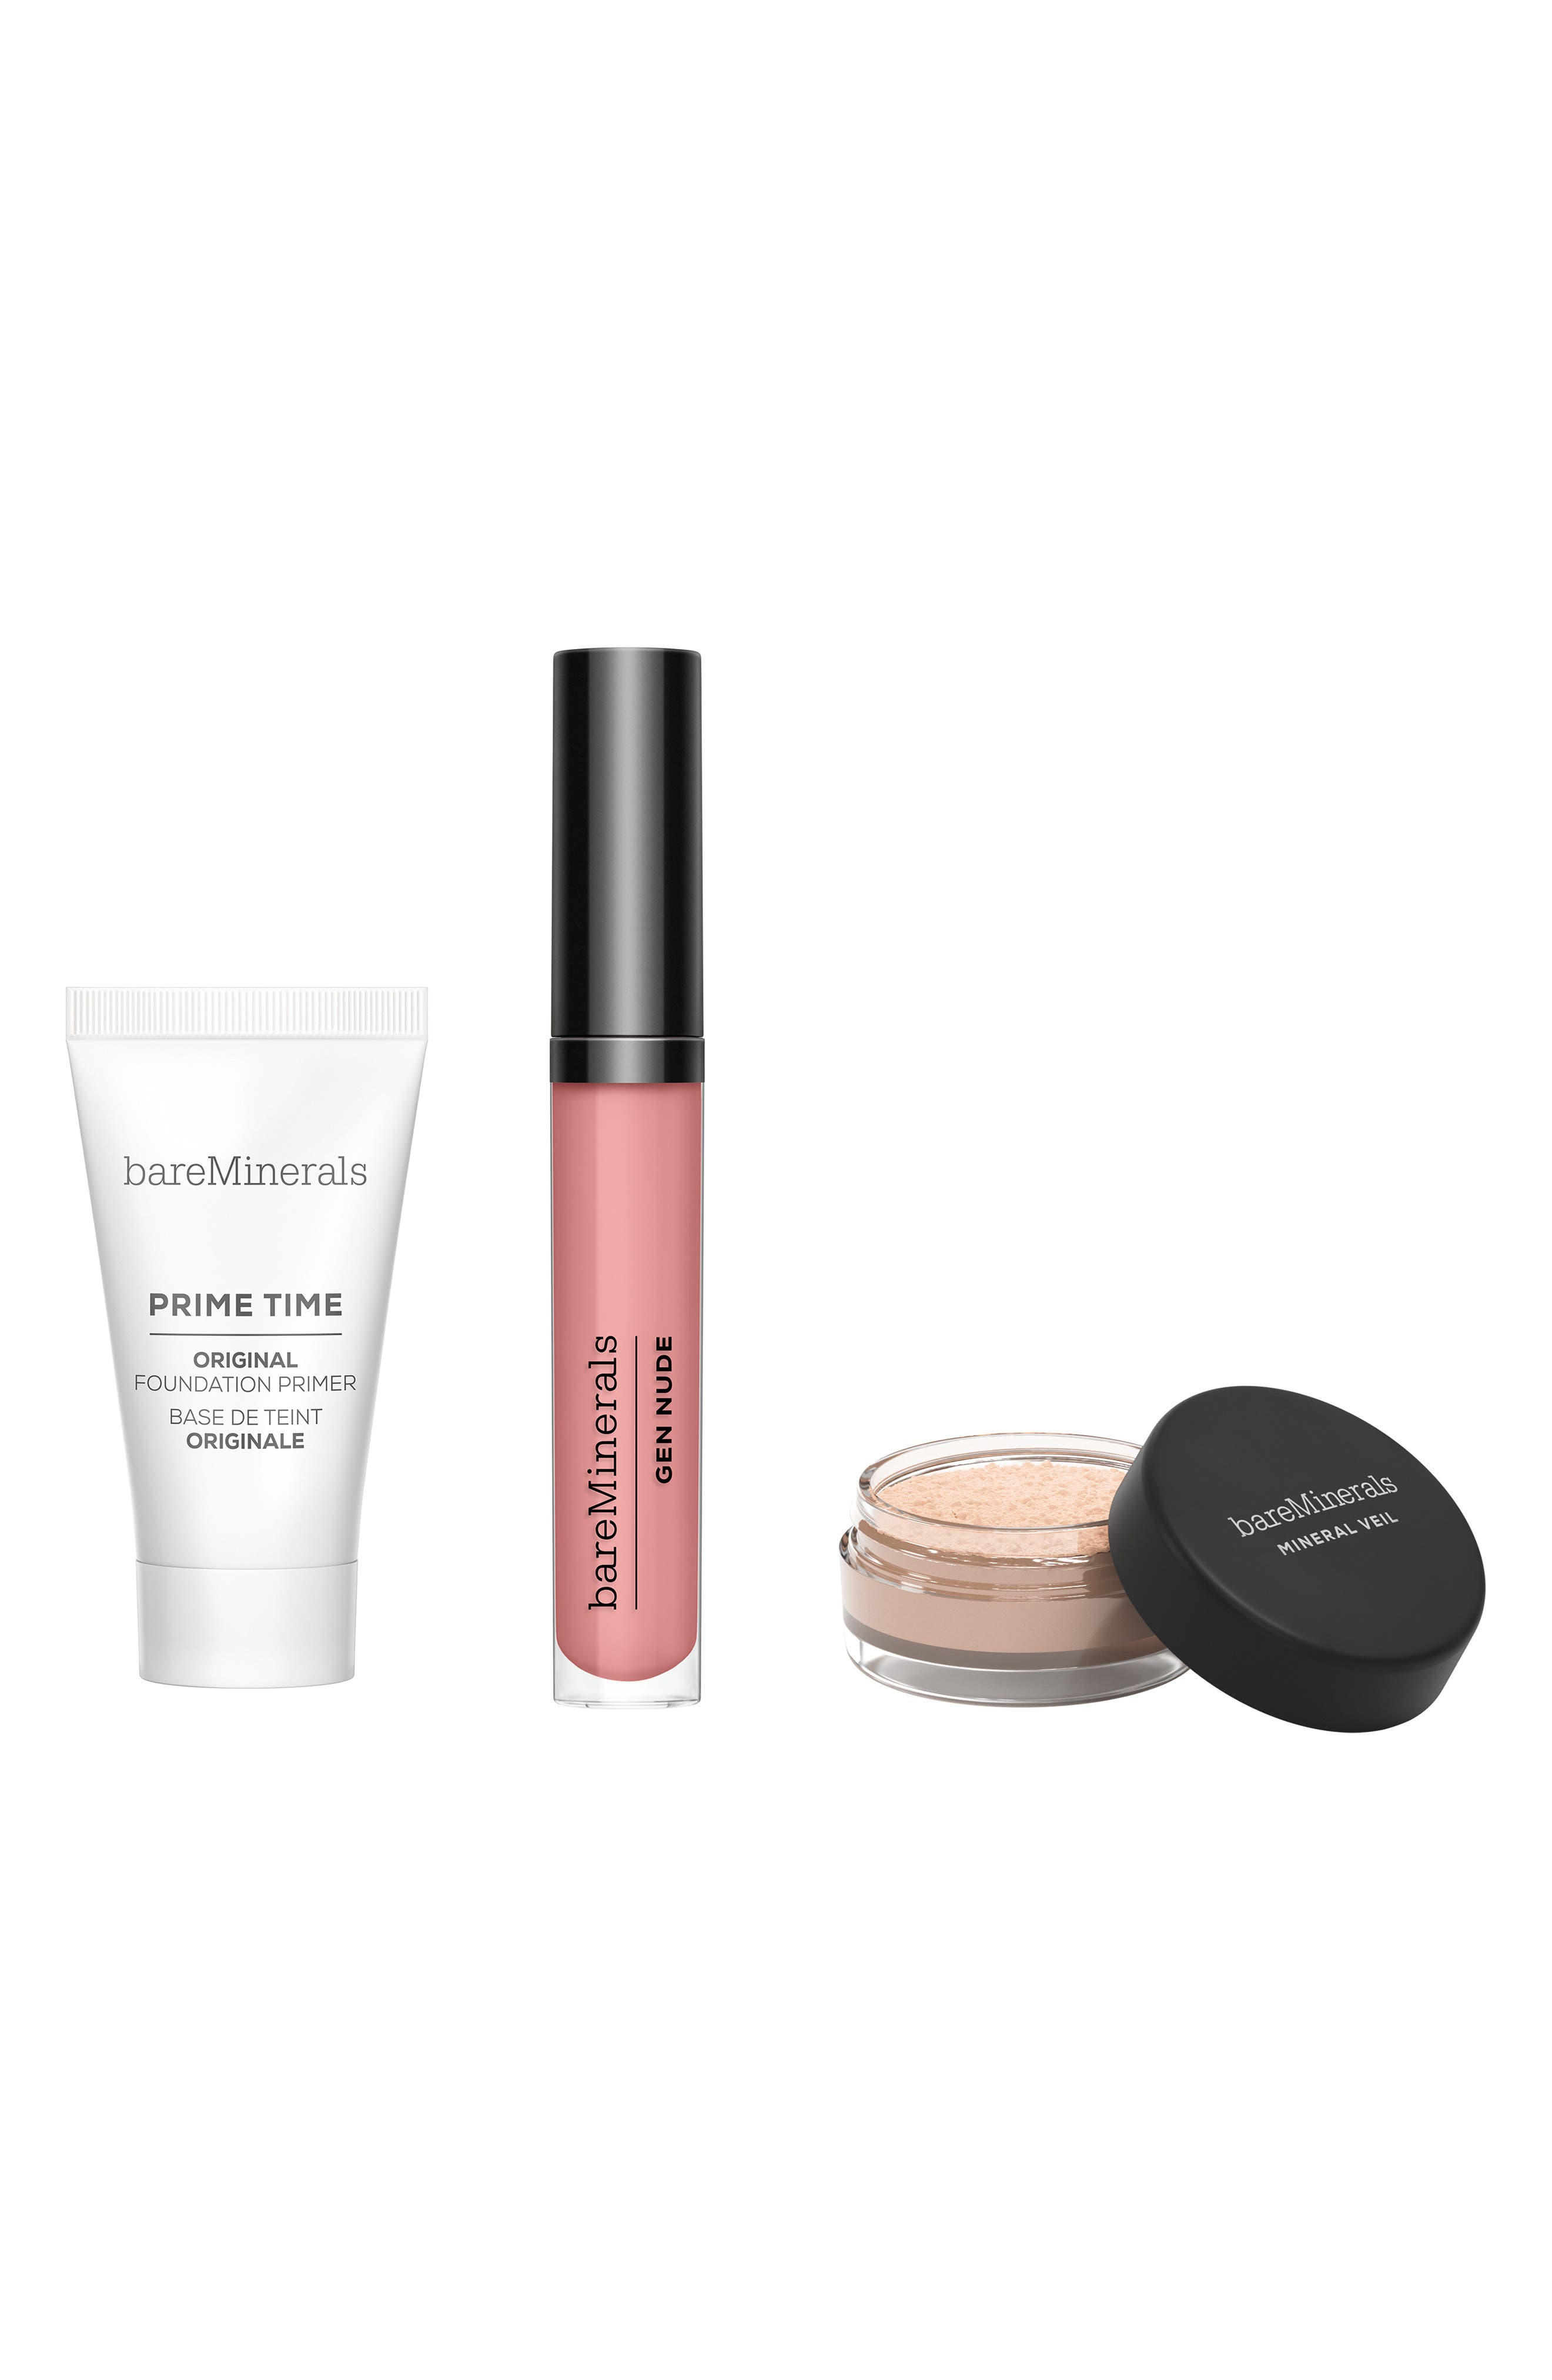 What it is: A limited-edition makeup trio to prime and perfect your way to beautiful skin, in eco-friendly packaging. Set include:- Full-size Gen Nude Patent Lip Laquer in Major (0.12 oz.): a vegan lip lacquer that provides high-shine, full-coverage color- Travel-size Prime Time Original Foundation Primer (0.5 oz.): a primer that creates a smooth canvas on your skin to extend makeup wear- Travel-size Mineral Veil Finishing Powder (0.03 oz.): a